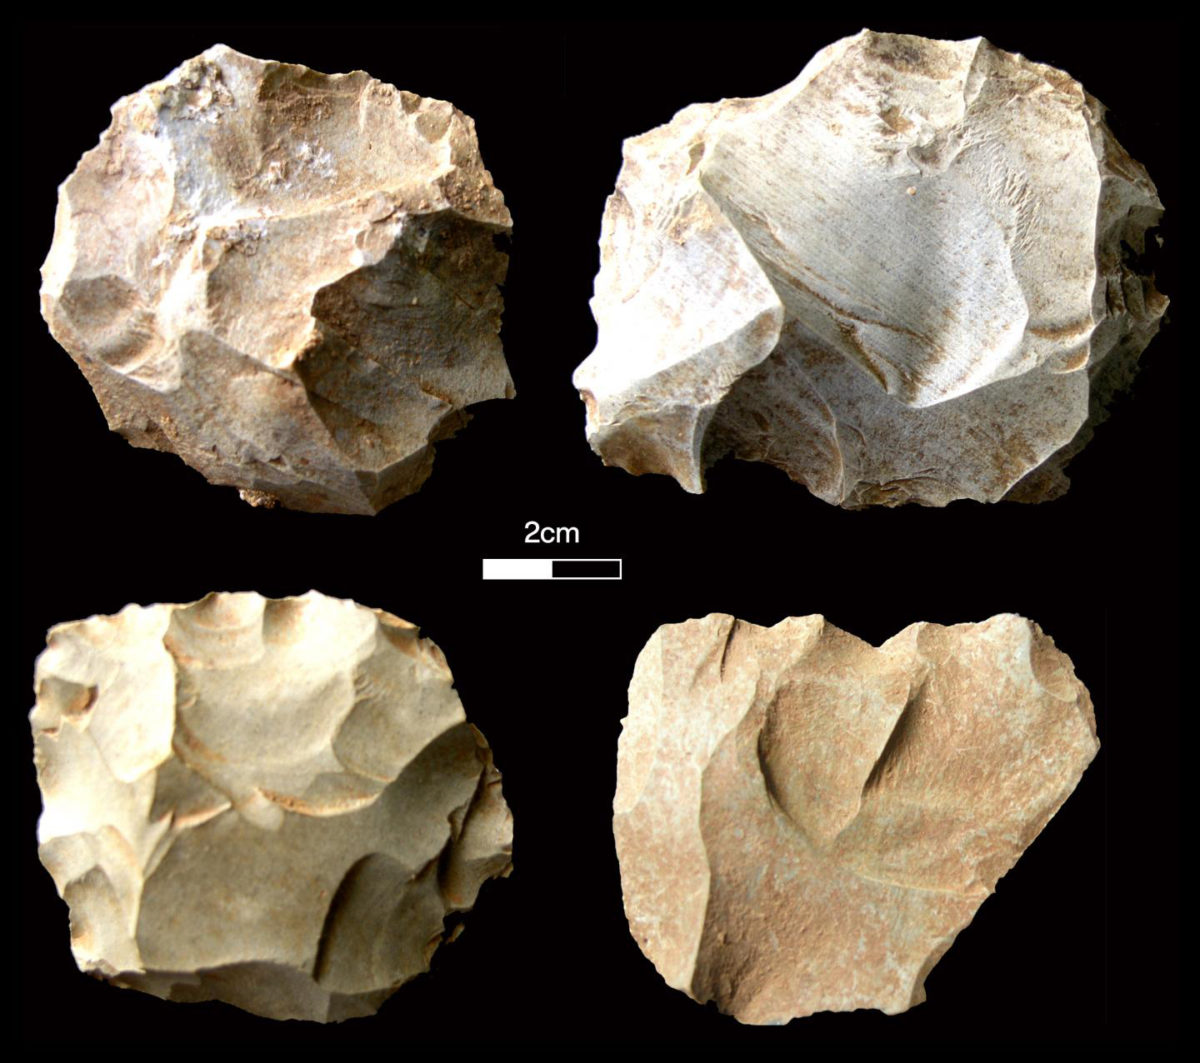 Stone tools found at the Dhaba site corresponding with the Toba volcanic super-eruption levels. Pictured here are diagnostic Middle Palaeolithic core types. Credit: Chris Clarkson